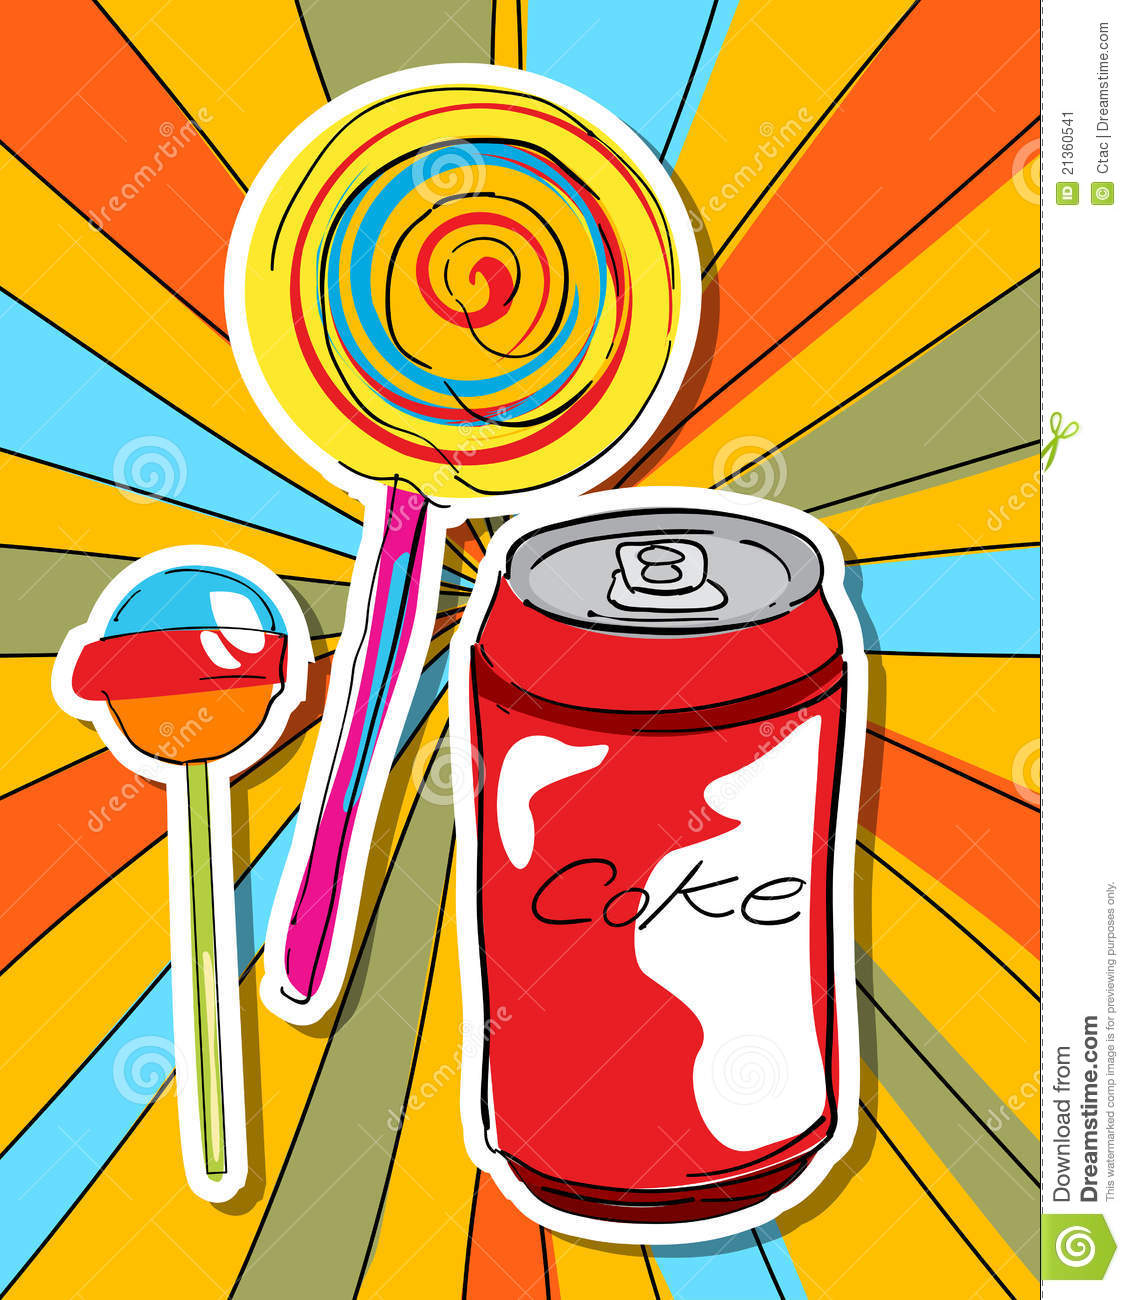 Pop art graphic background with lollipop, soda and candy.